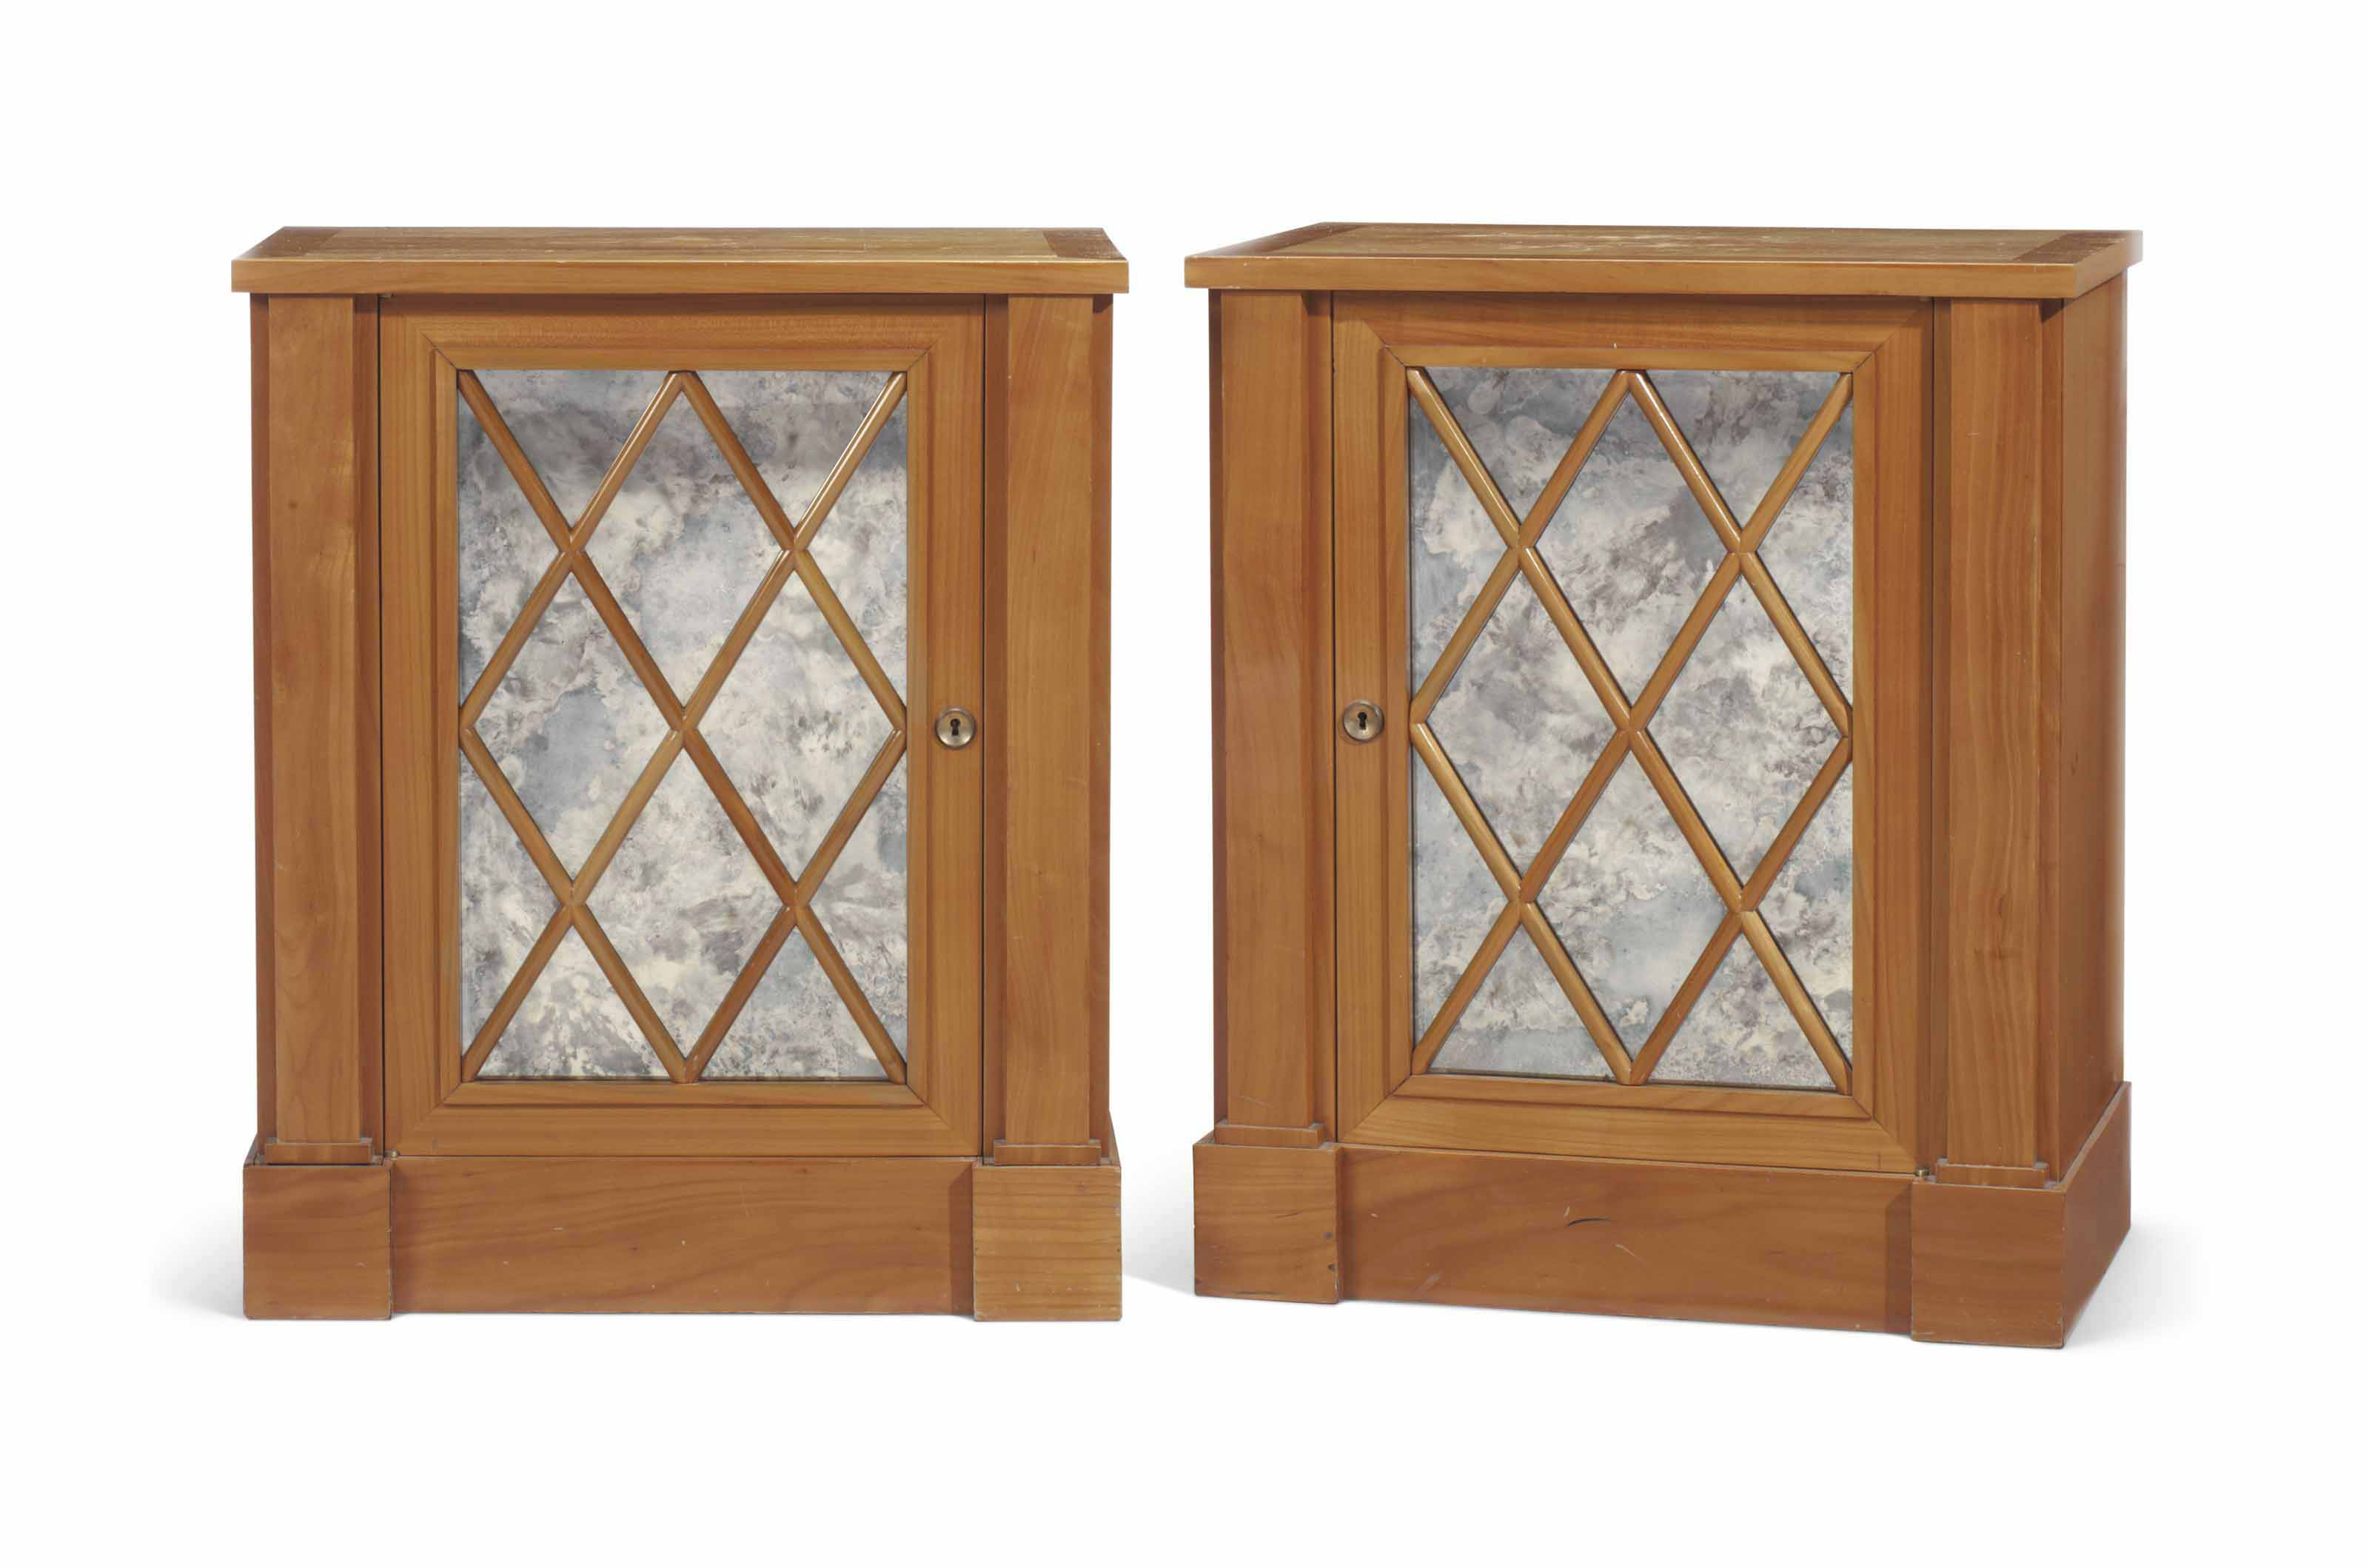 A PAIR OF FRUITWOOD CABINETS